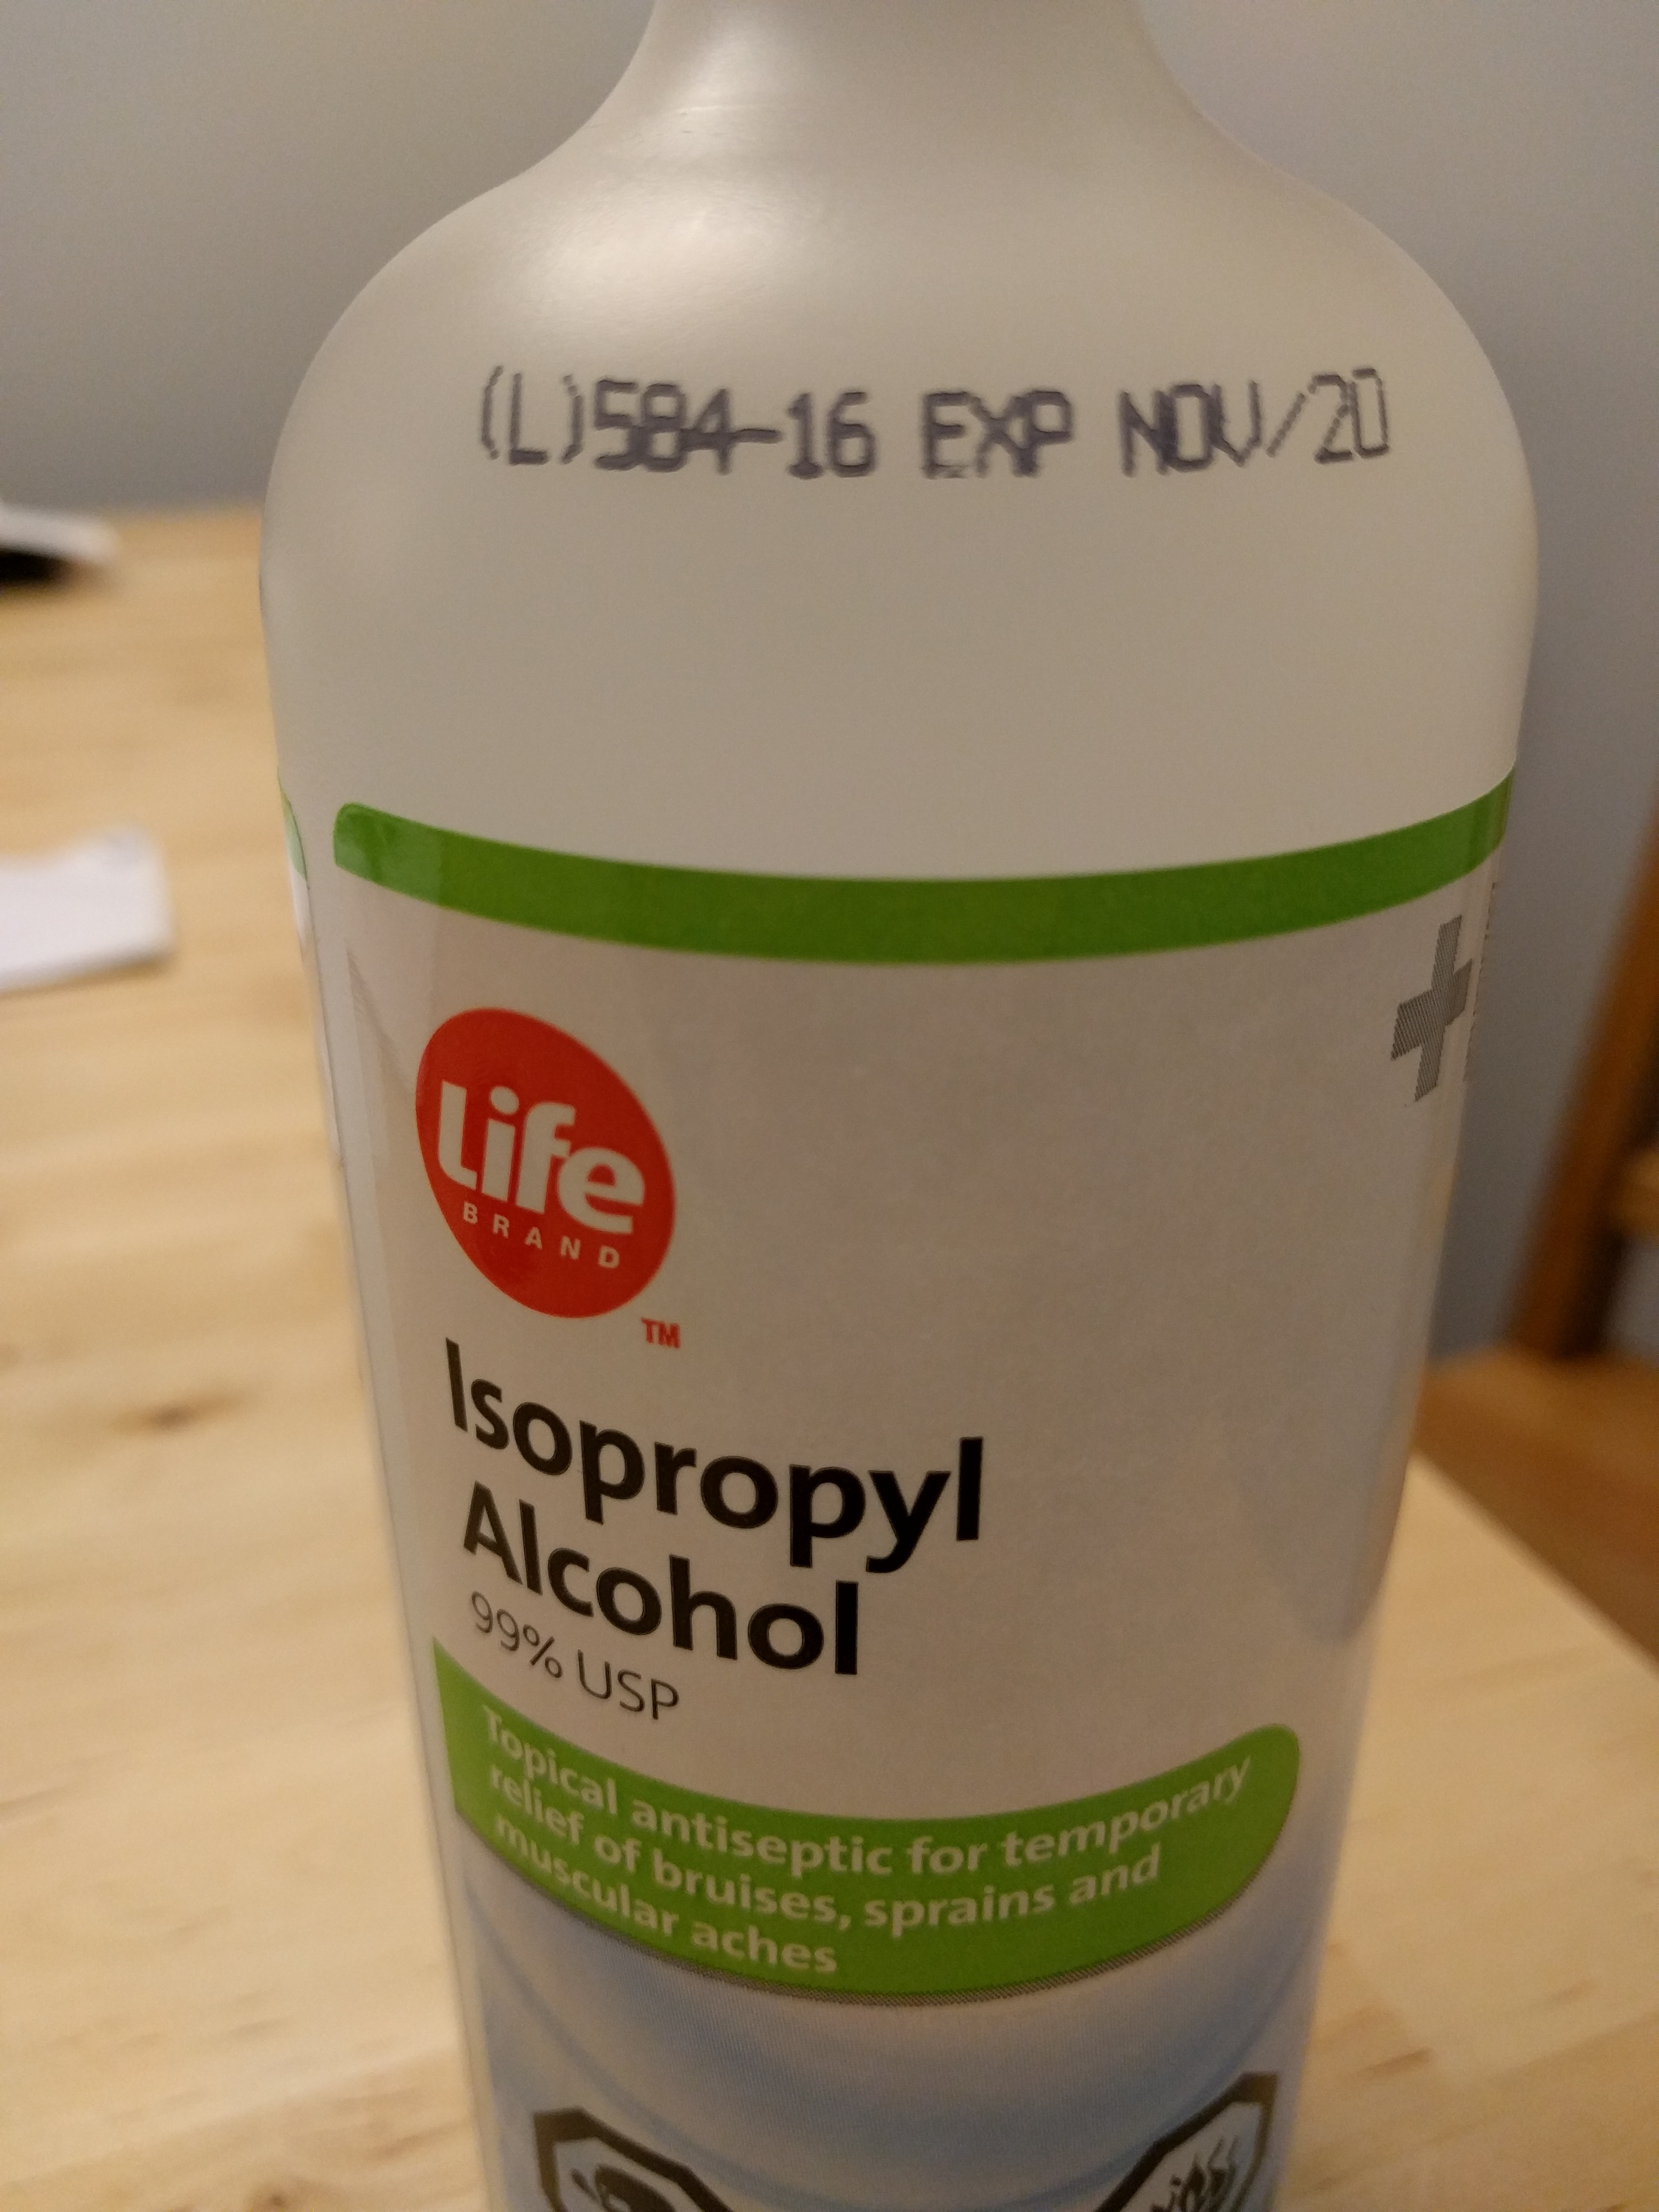 Where Can I Get 99 Isopropyl Alcohol